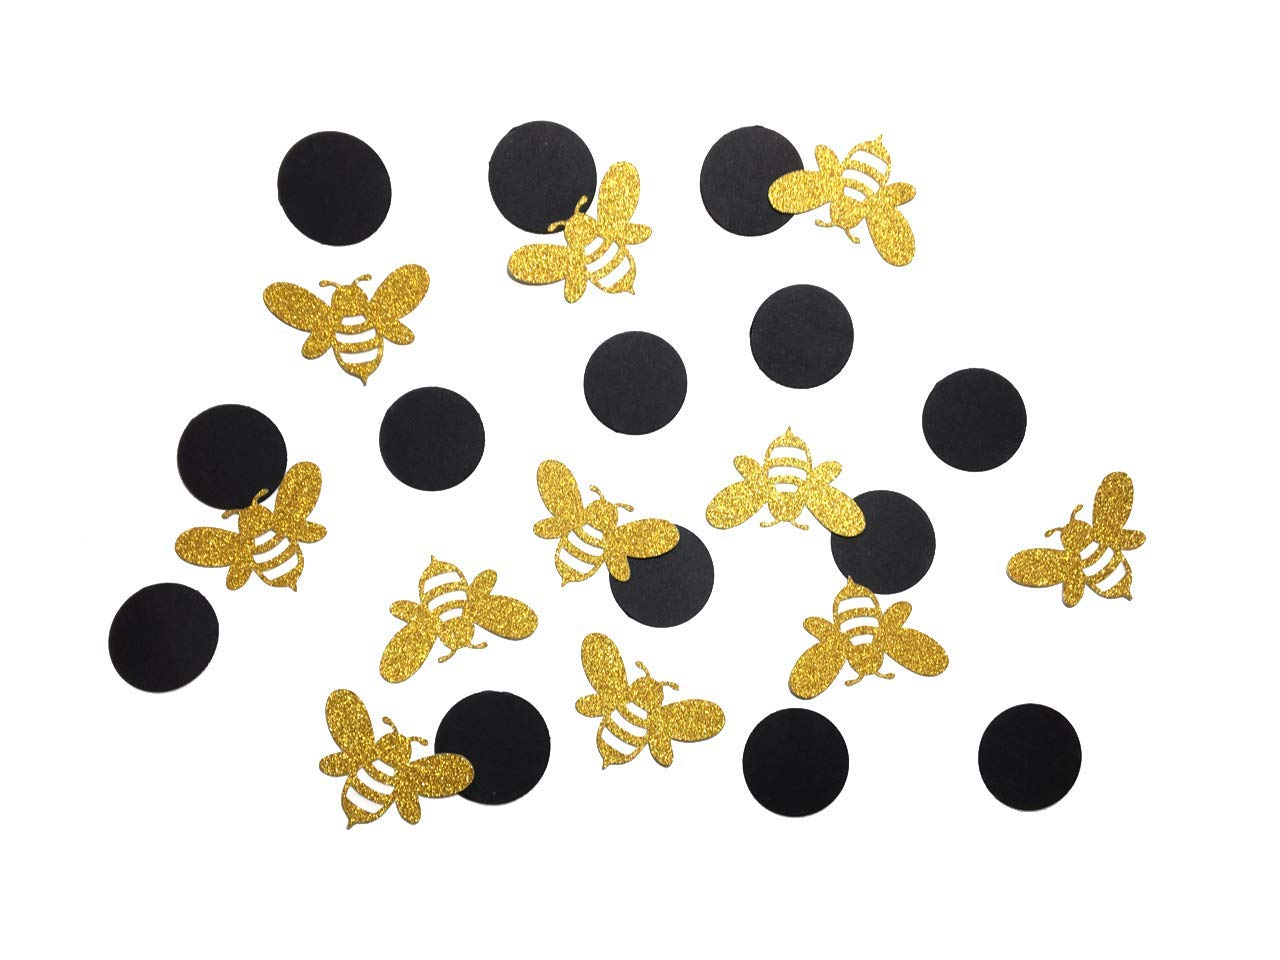 120 pcs Gold Glitter Bee and black circle confetti mommy mom bride to bee baby shower birthday table party decoration